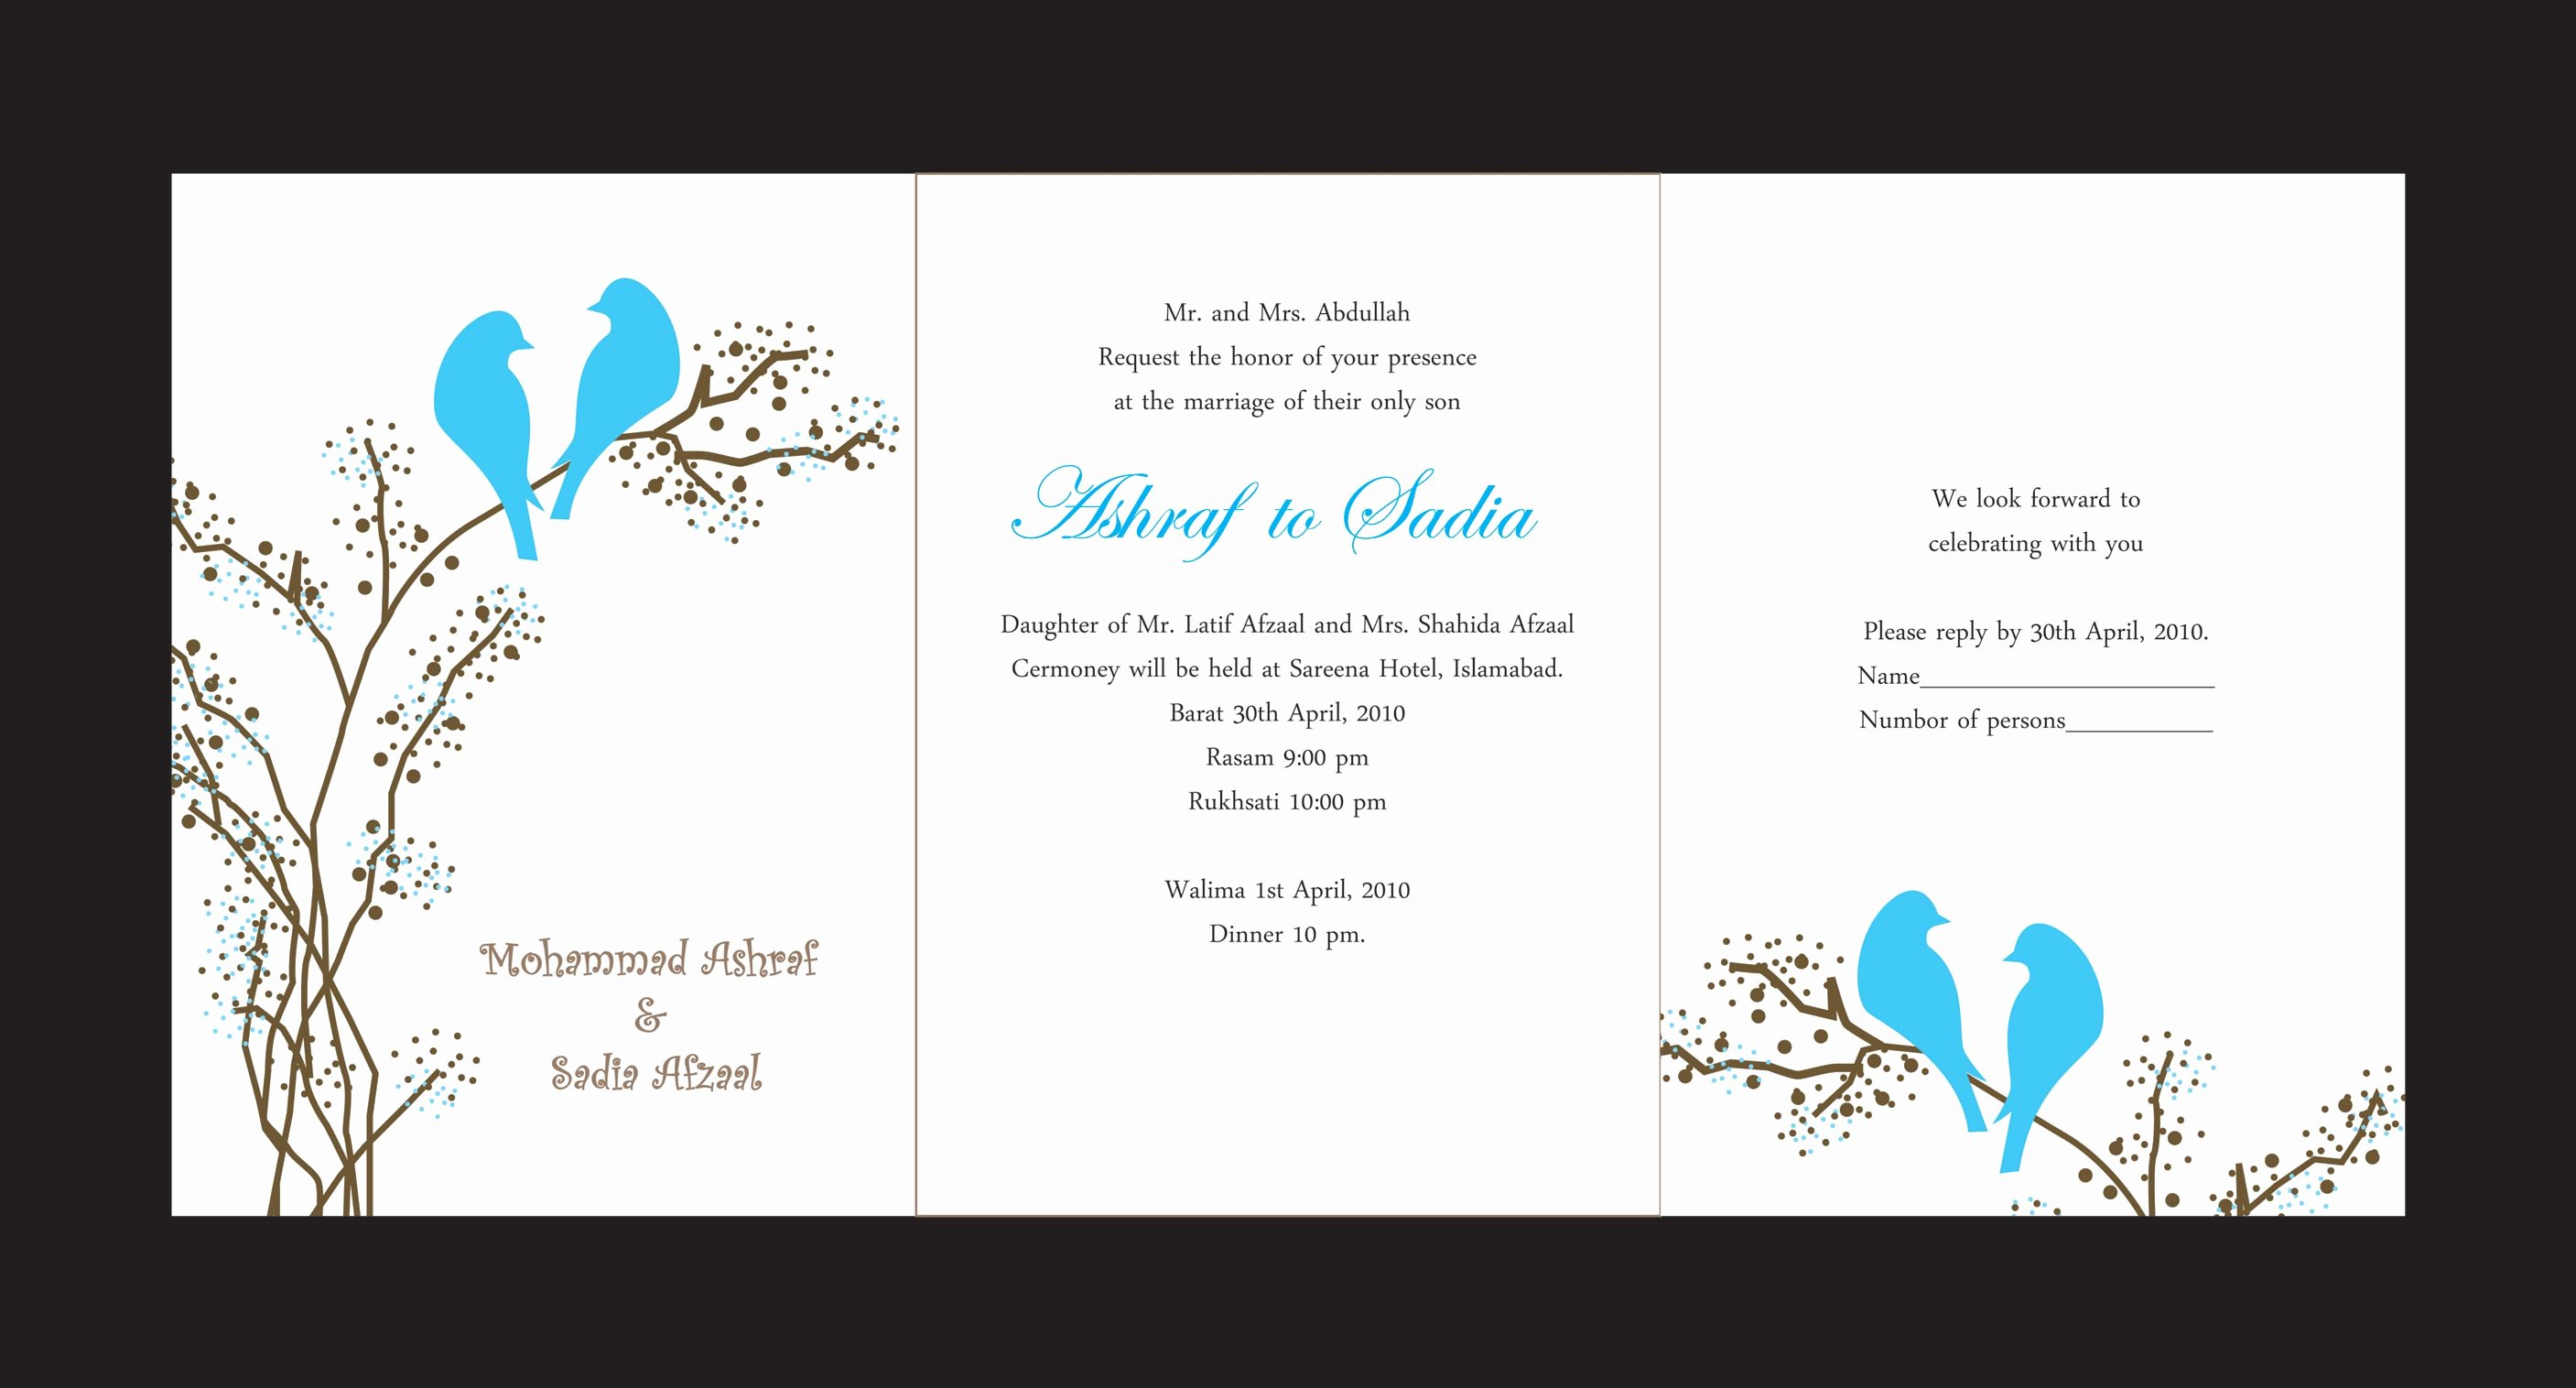 Marriage Invitation Card Design Inspirational Wedding Cards